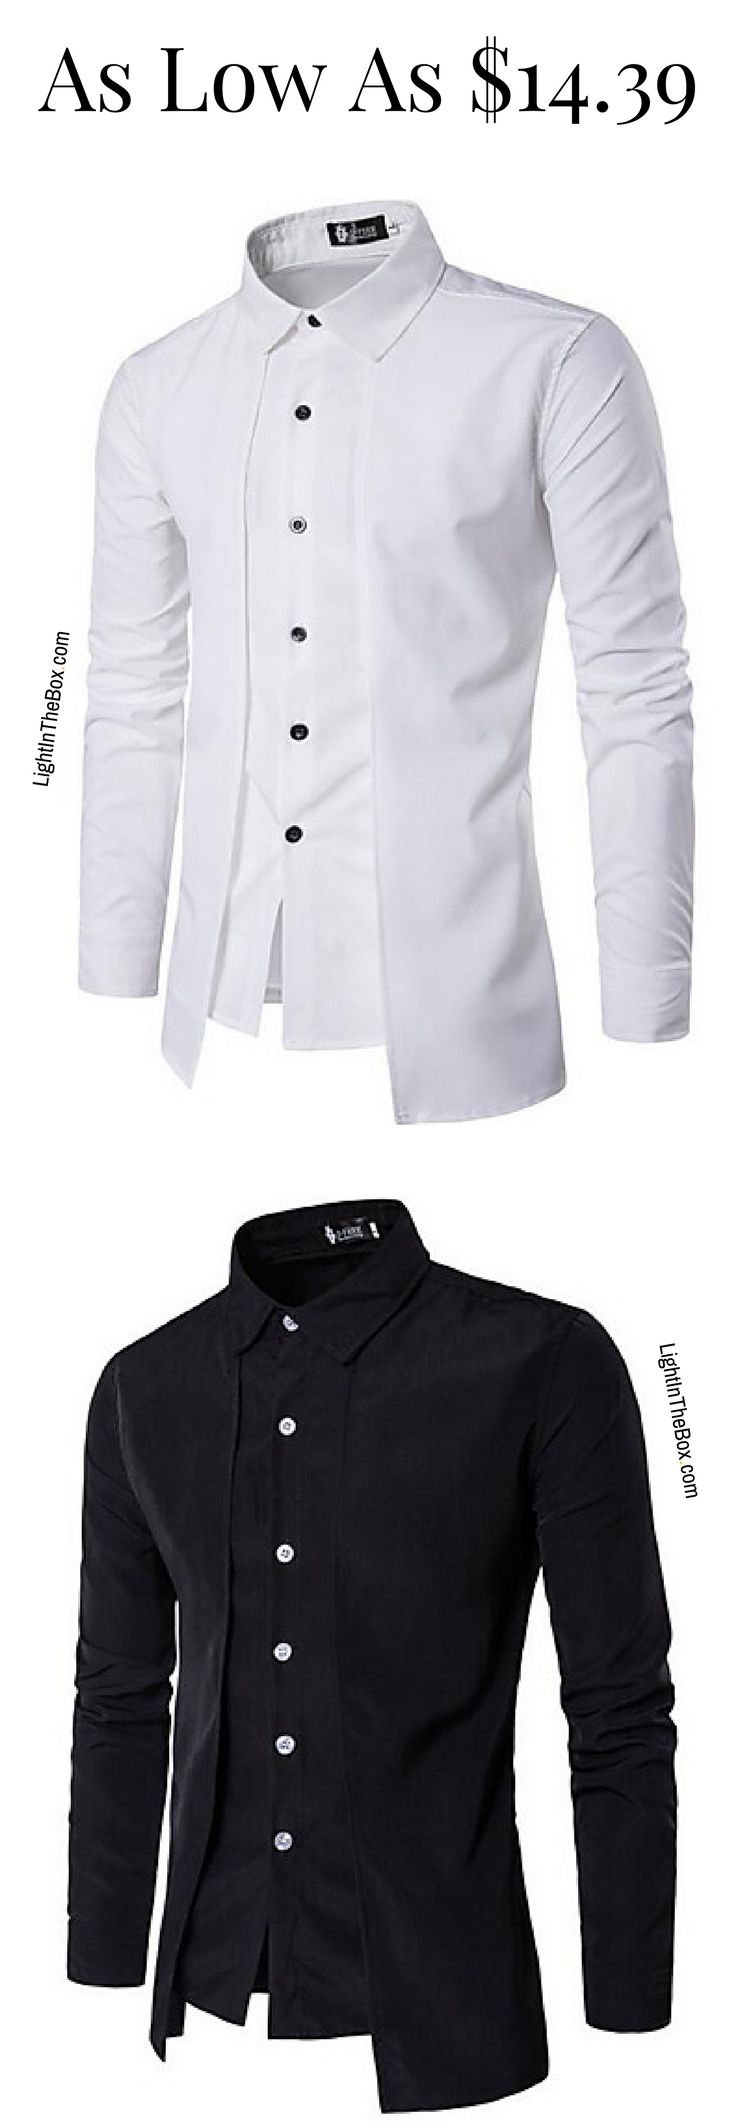 Unique design stylish men formal shirt. Wear it to work or special events. Click on the picture to shop in white, black and navy blue colours at just $14.39.